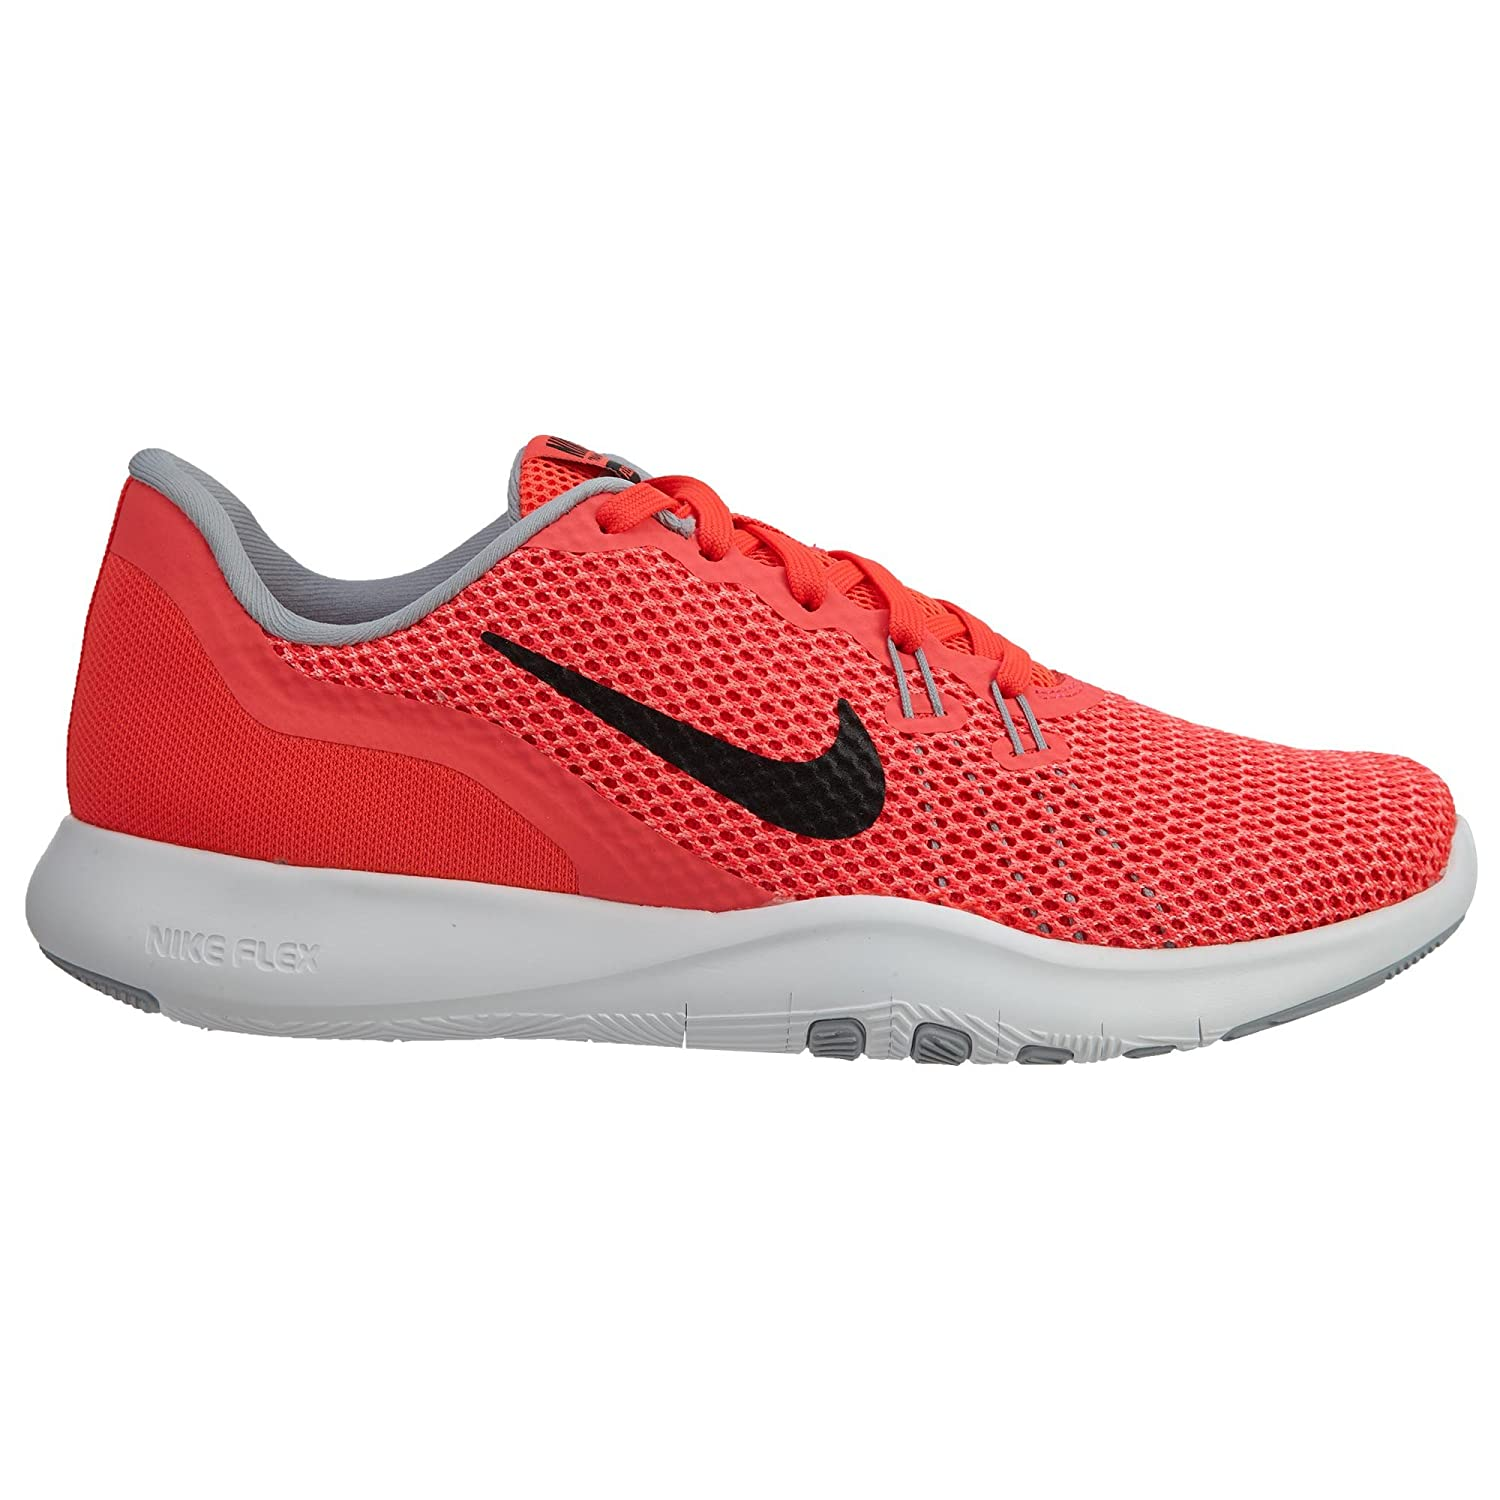 17e496285432 NIKE Womens W Flex Trainer 7 Solar RED Black HOT Punch Size 9.5   Amazon.co.uk  Shoes   Bags